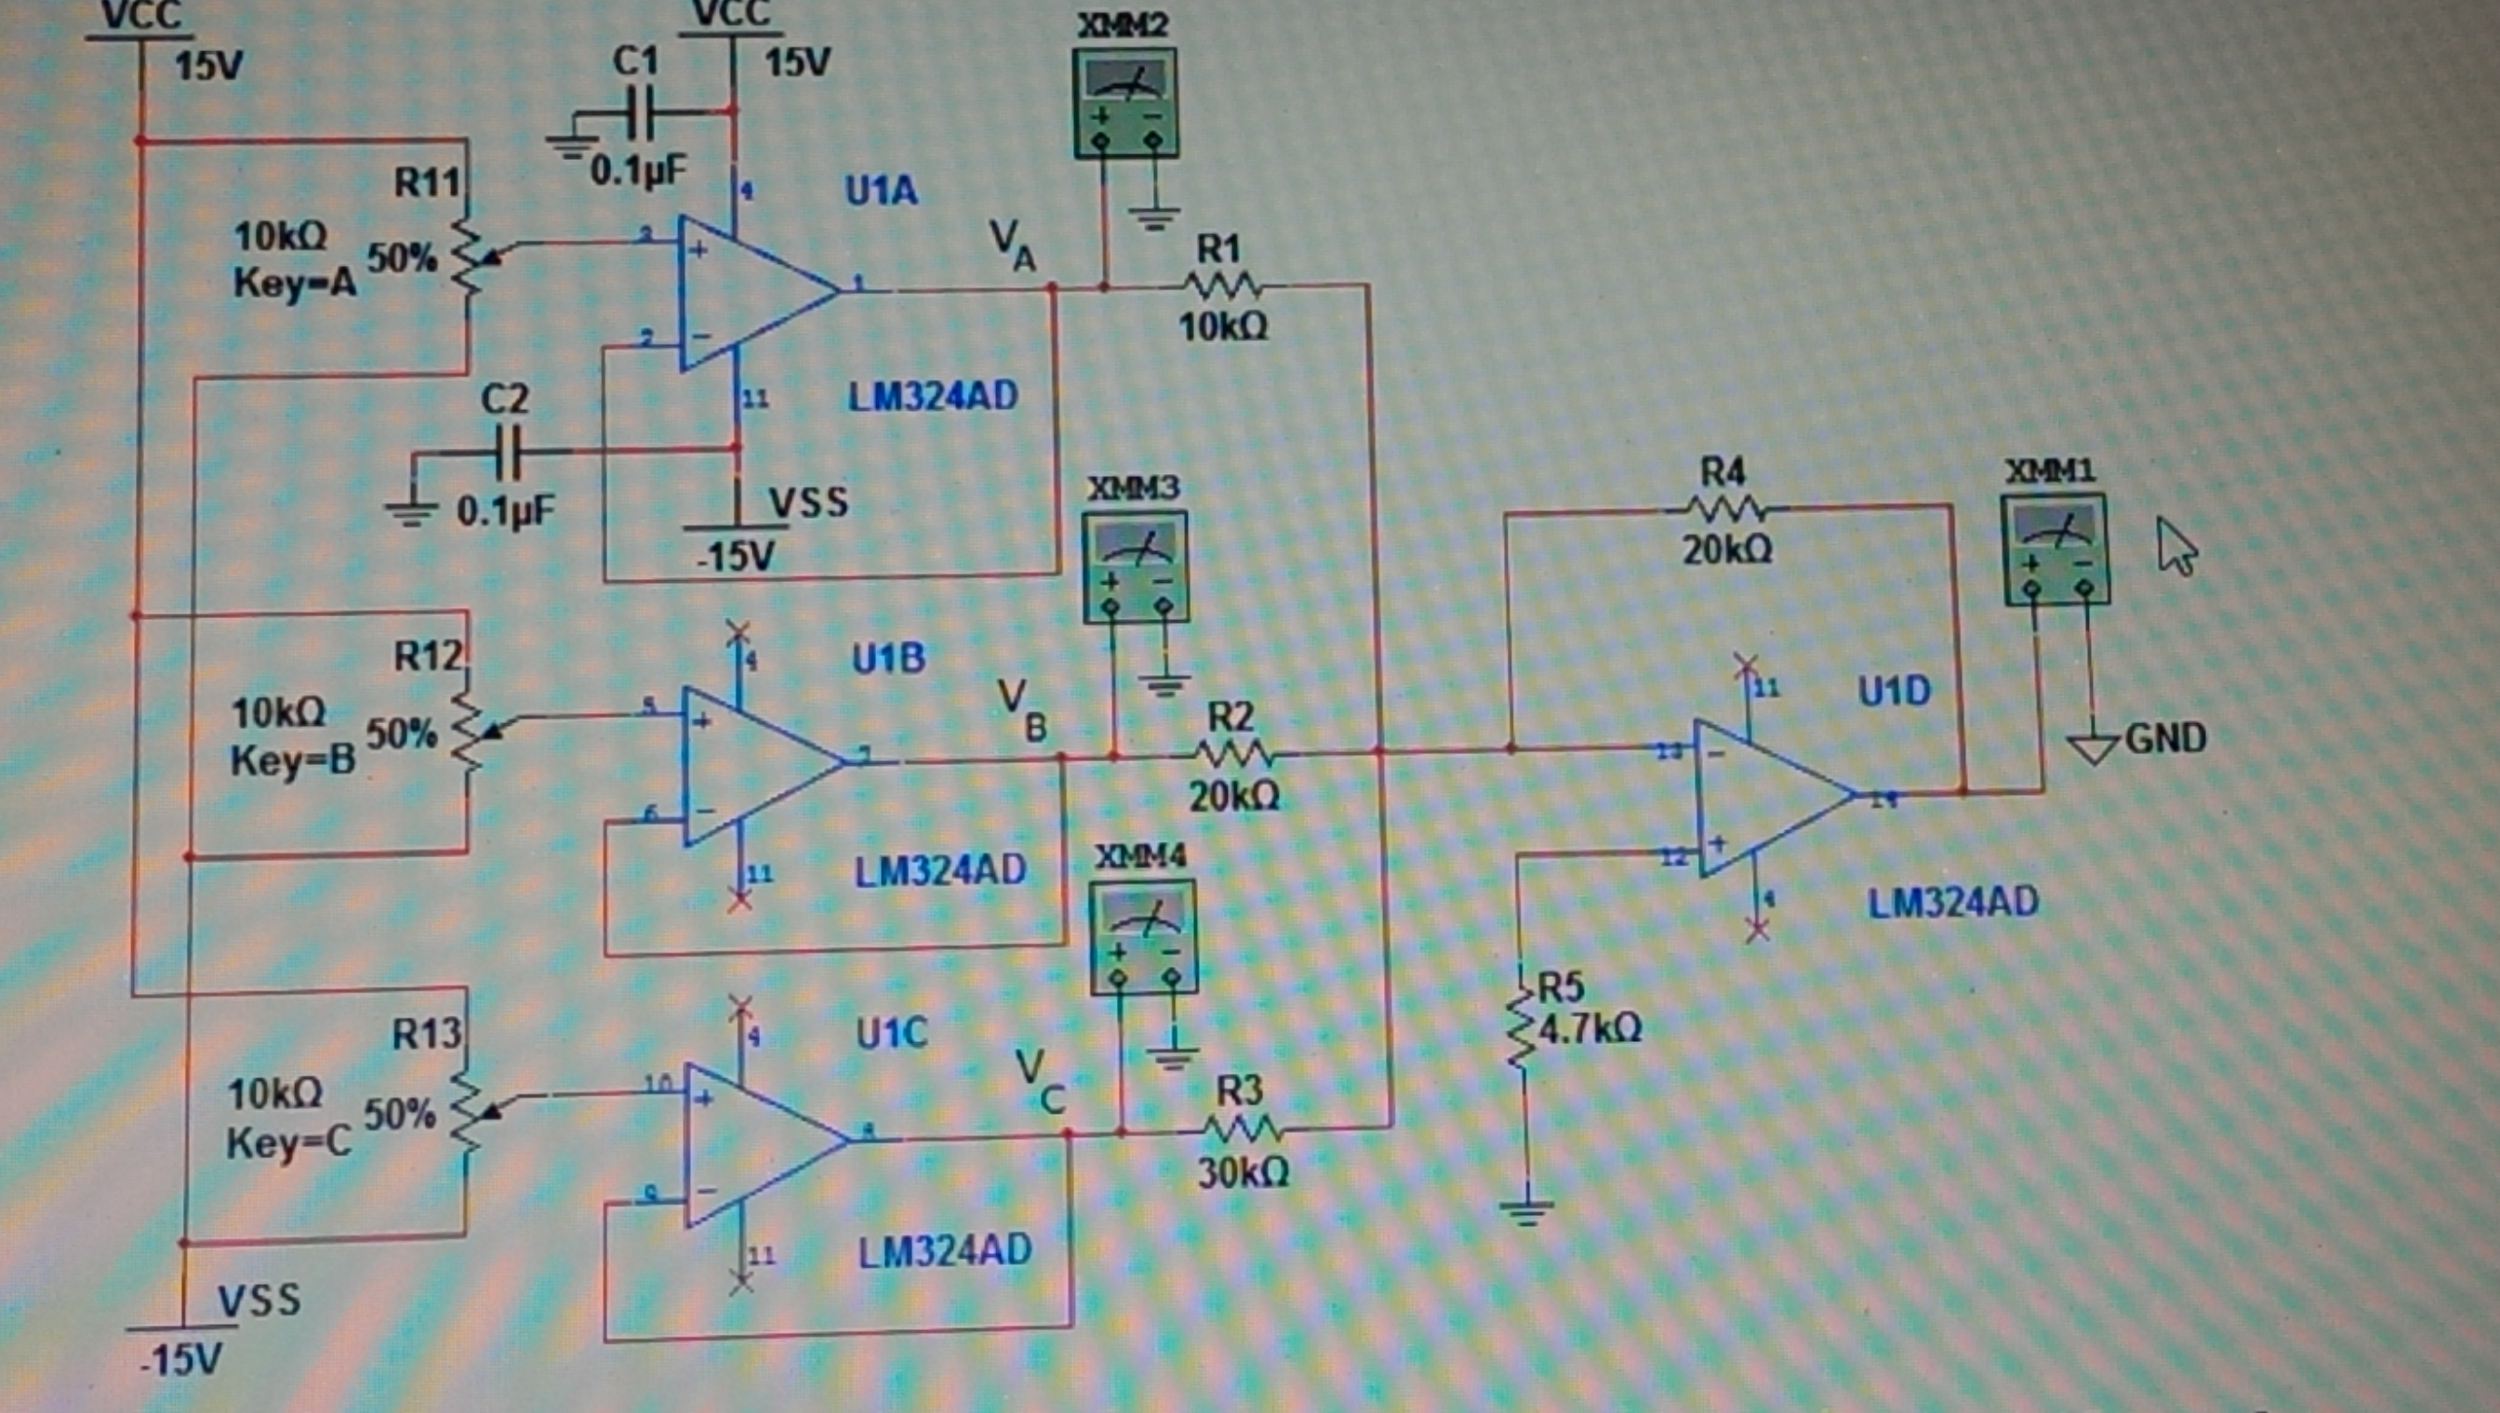 Calculate all voltages Va,Vb, Vc, Voltage gain,